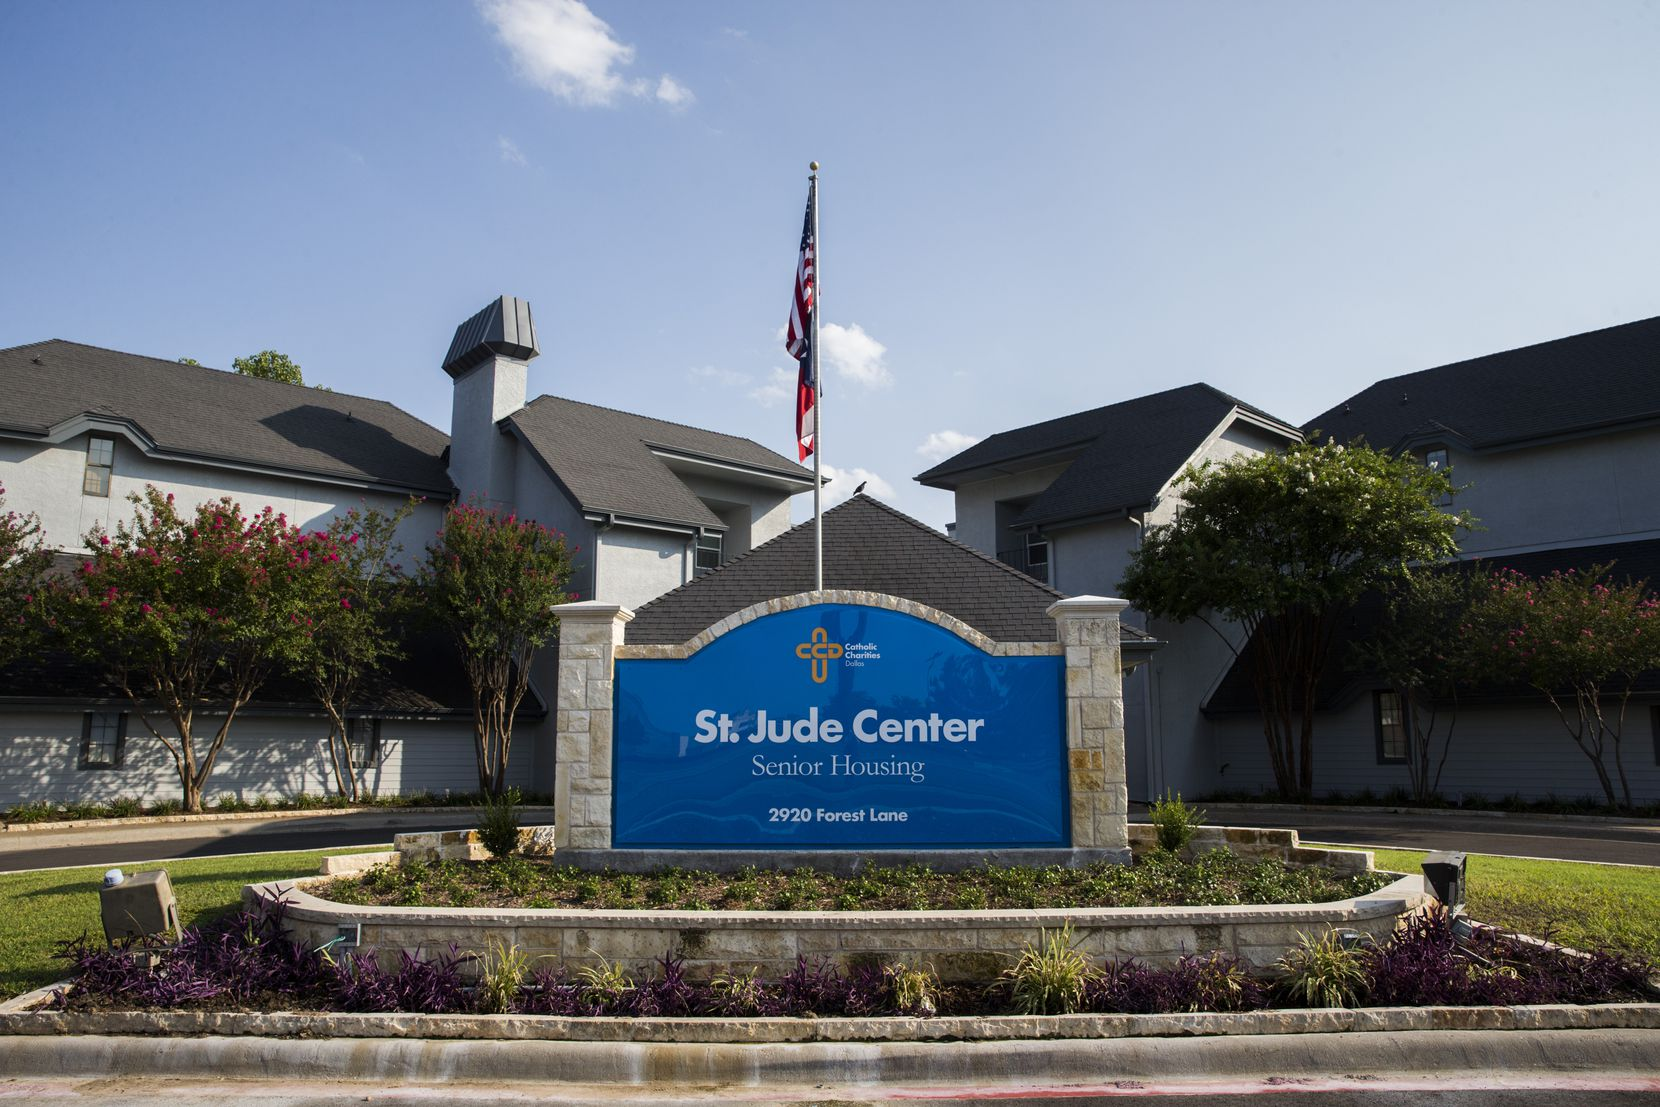 St. Jude Center had been a senior-living facility until Catholic Housing Initiative took over — and rebuilt — the complex, at the cost of $56,000 per unit, a bargain compared to new-construction costs.